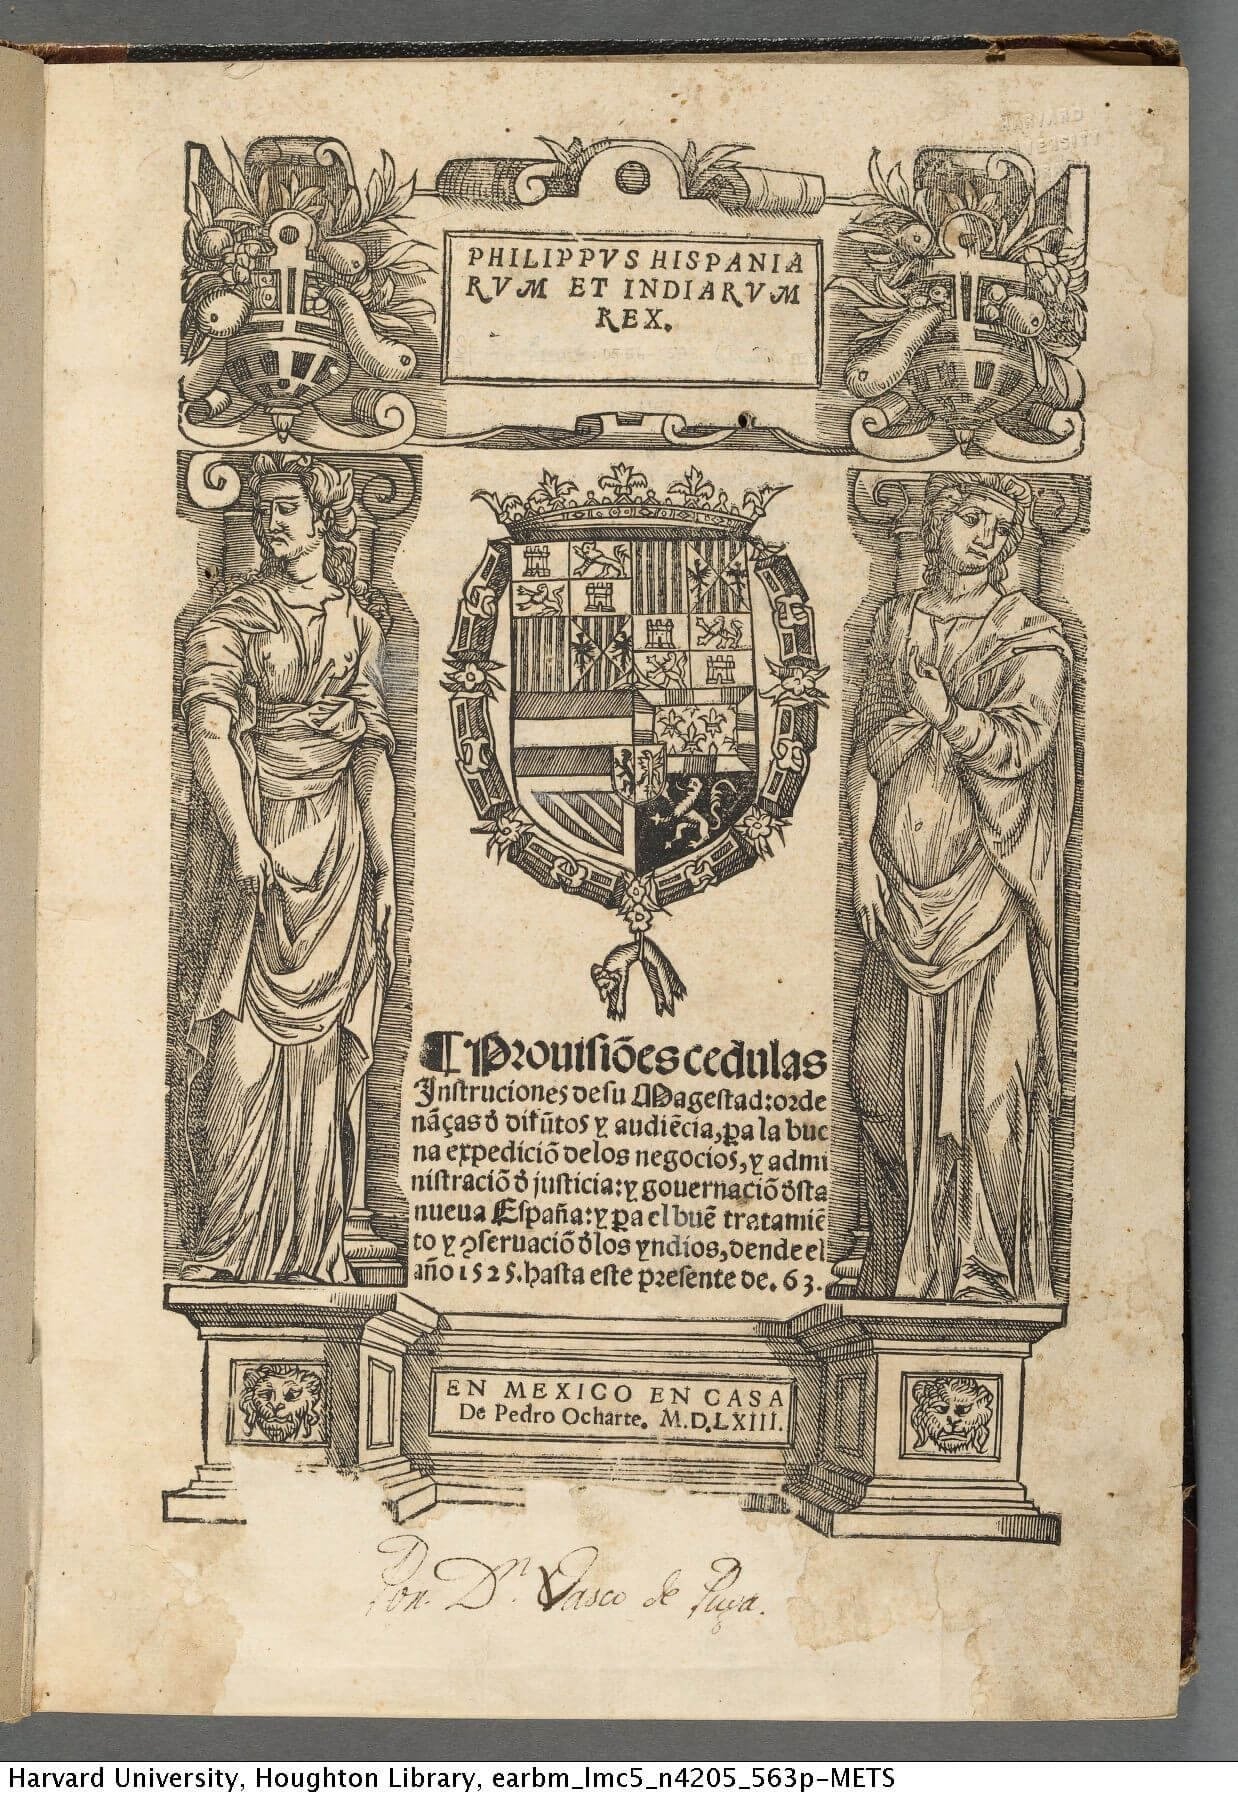 The title of this collection of Spanish colonial laws is surrounded by four separate woodcuts used as borders, as well as a cut of the Spanish coat of arms.